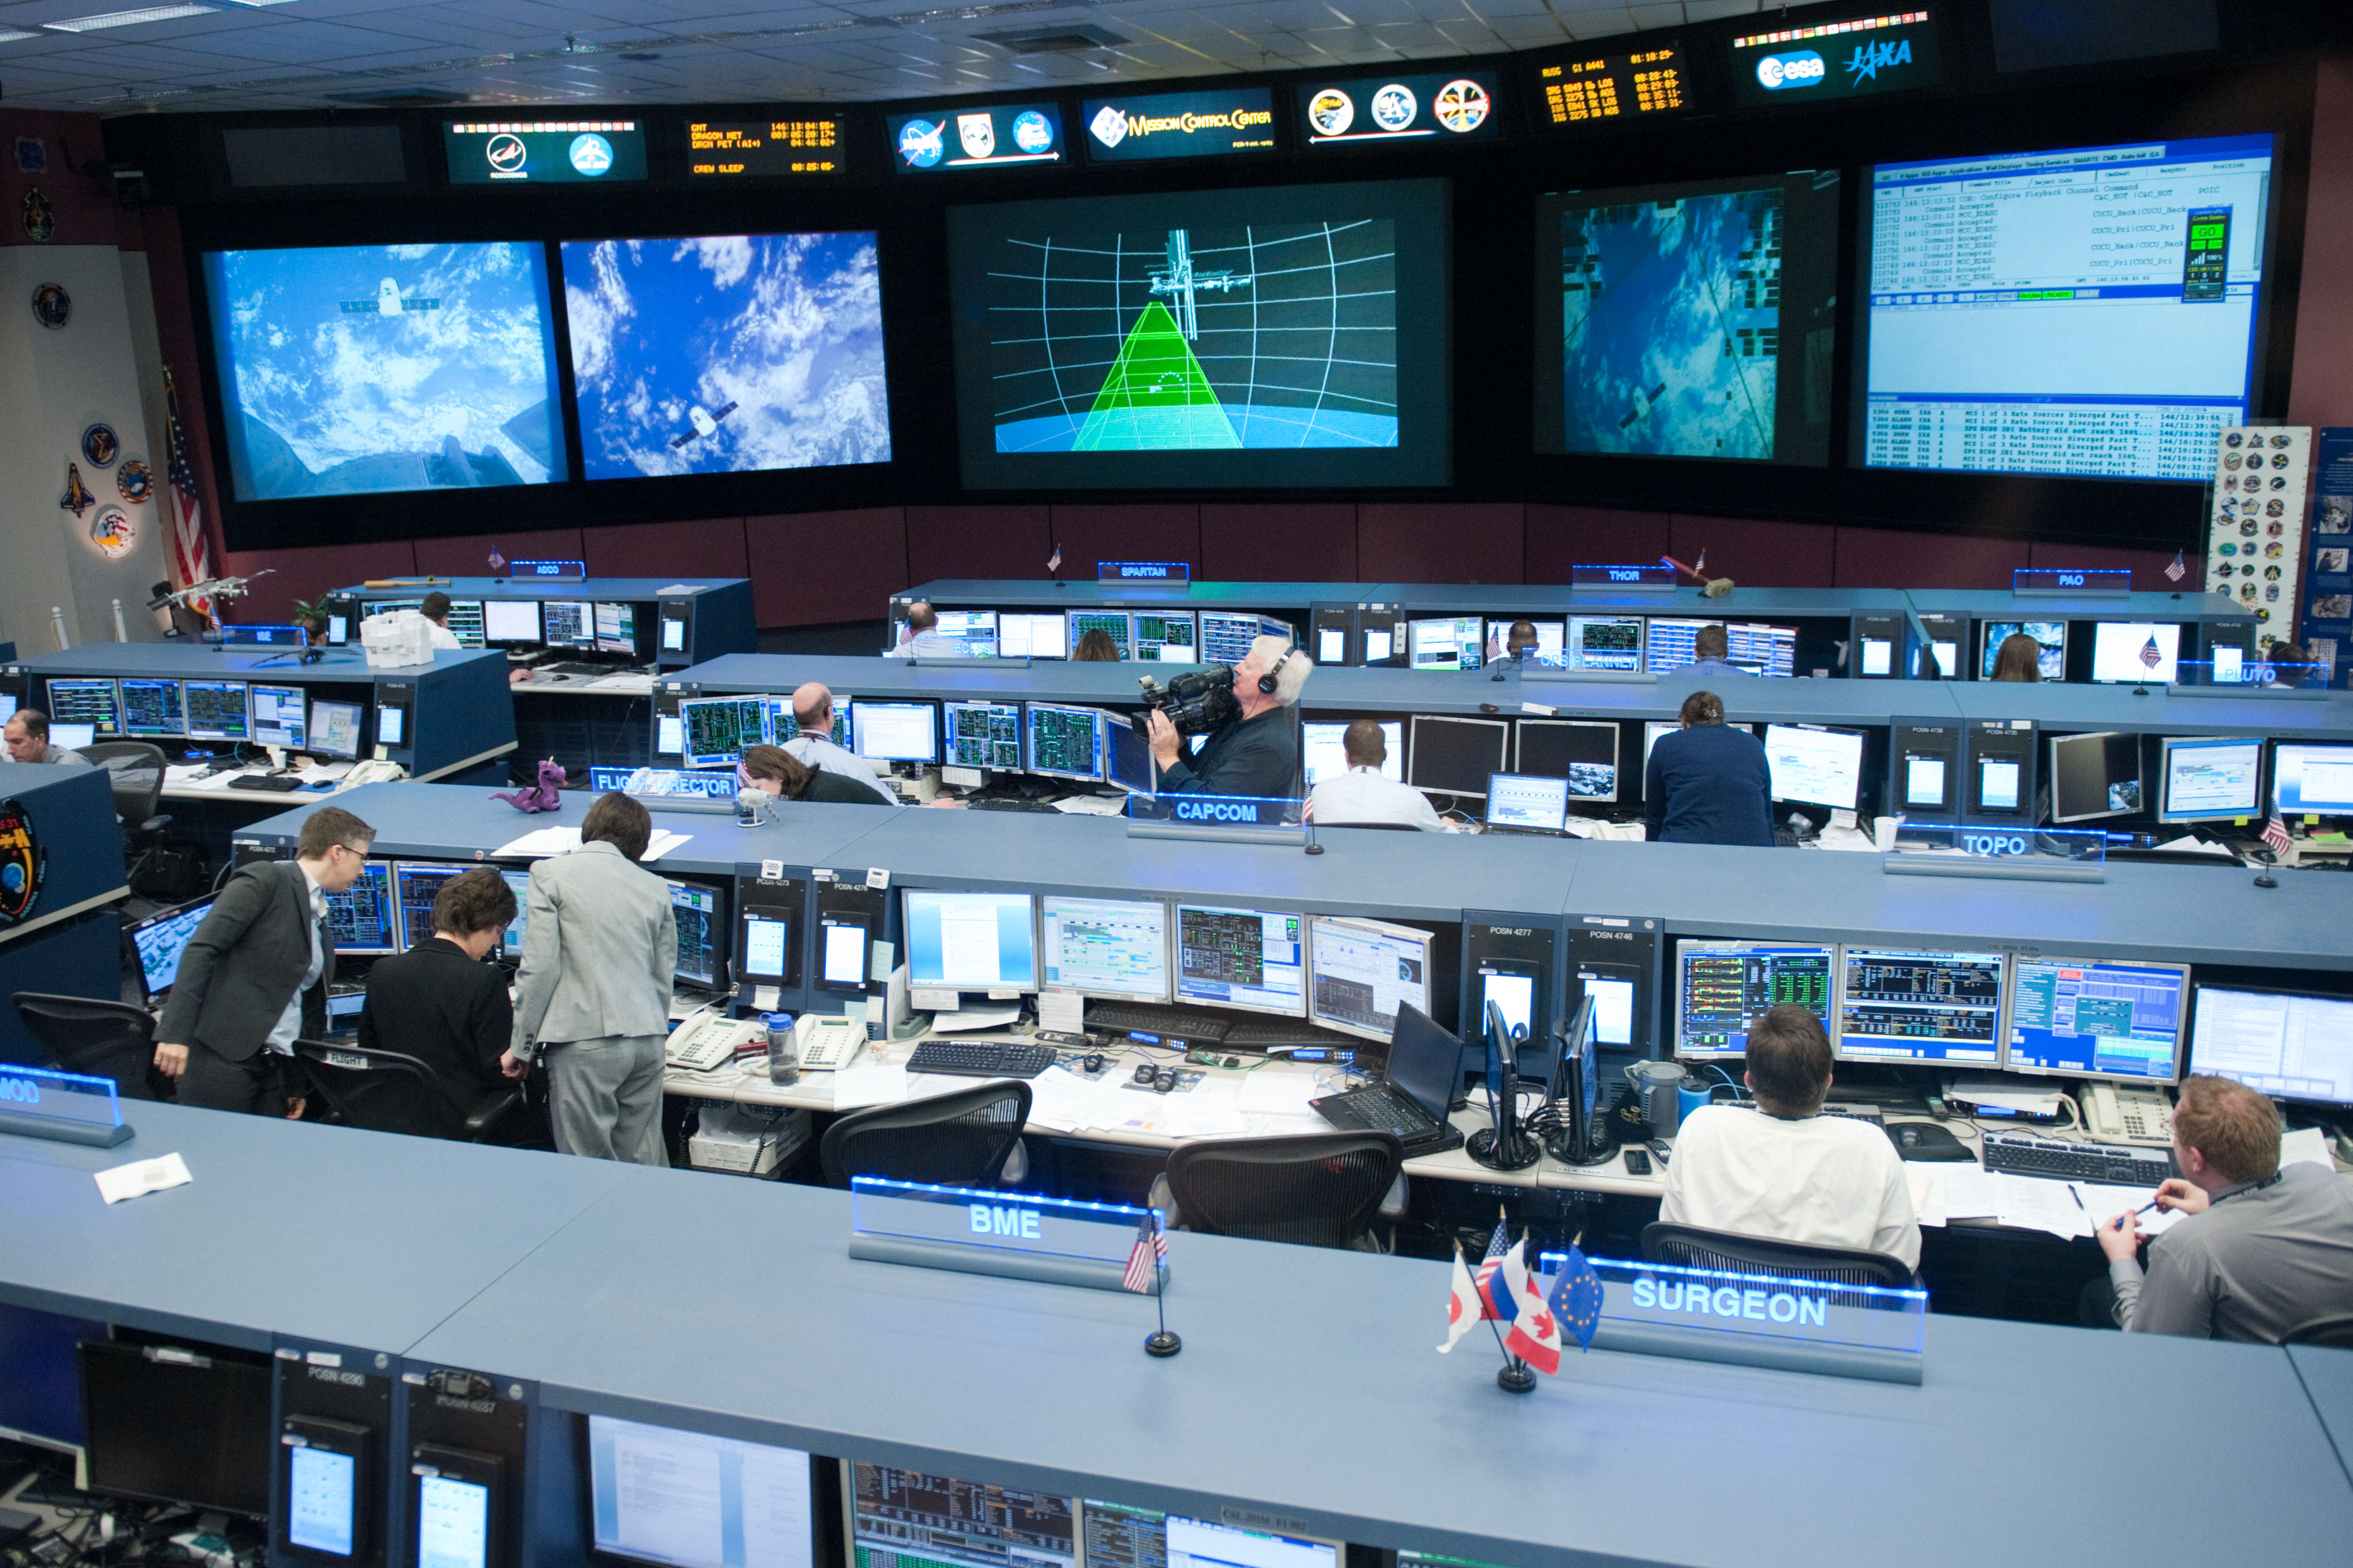 spacex launch control center - photo #20